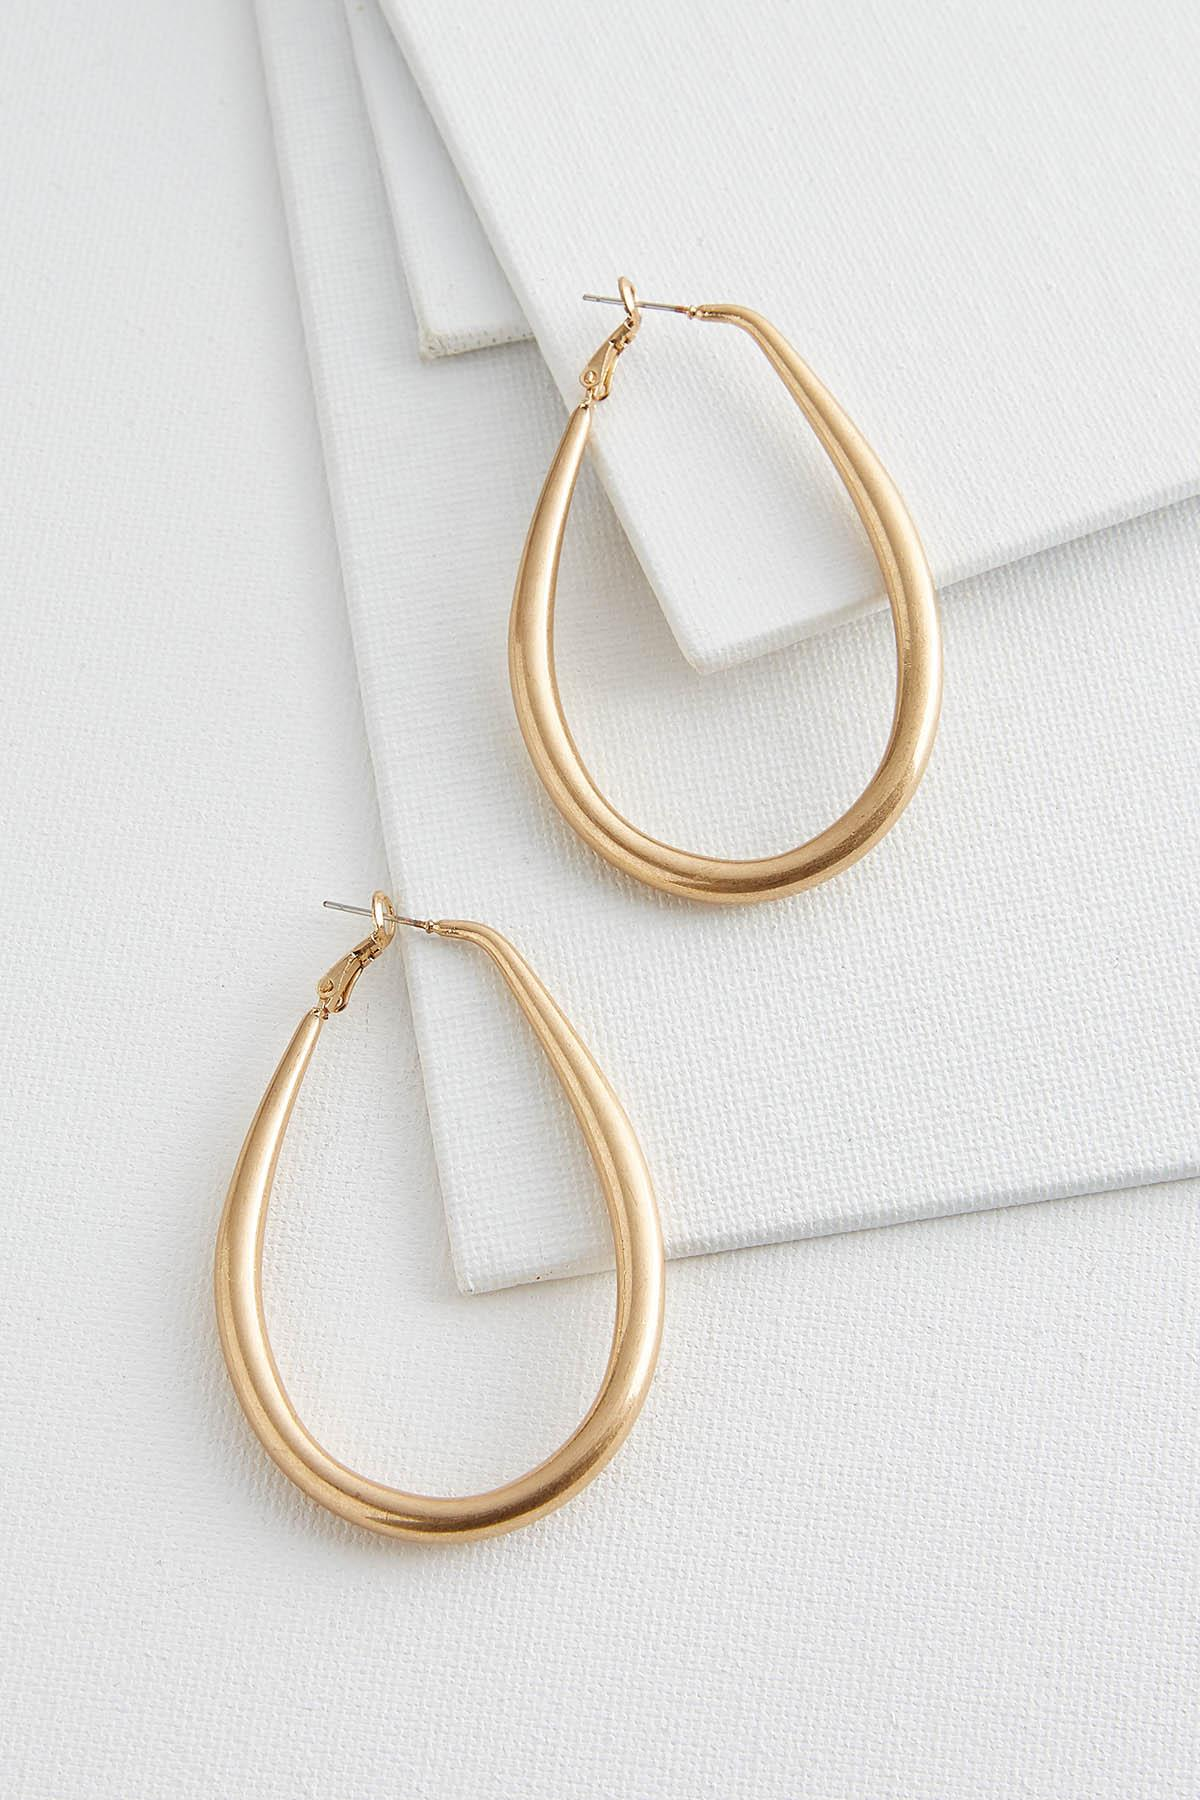 Tear Hoop Earrings